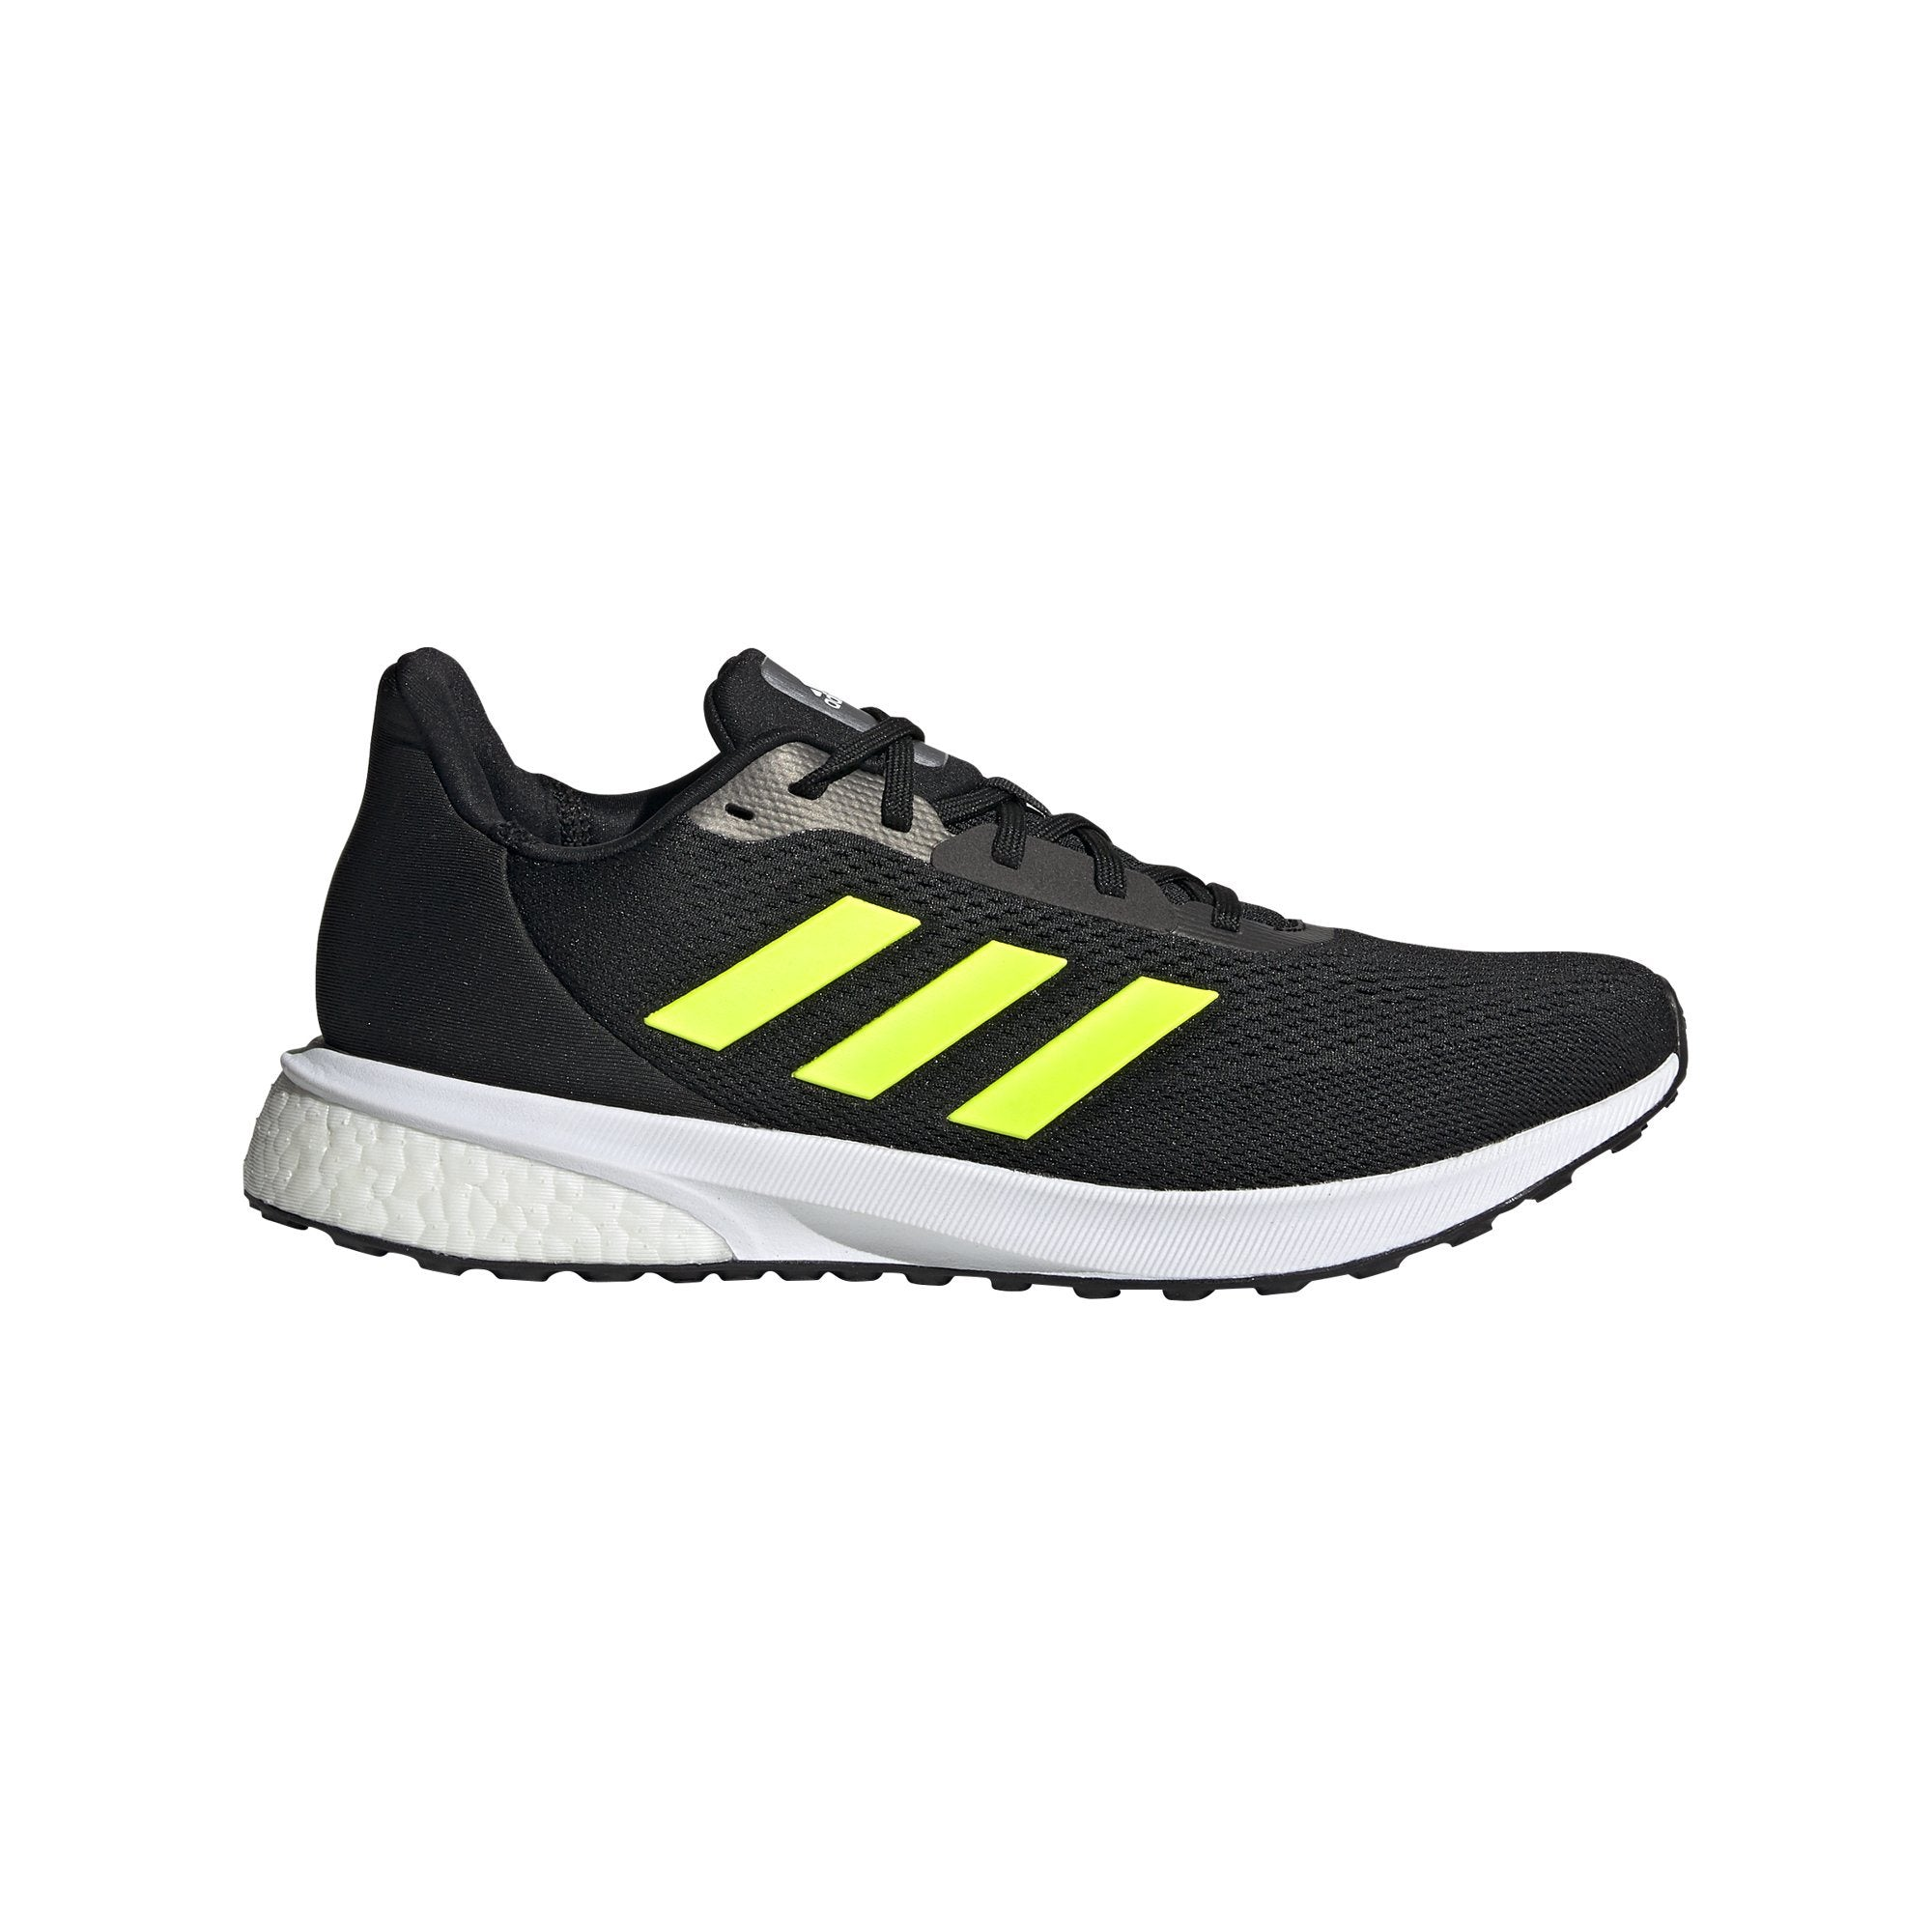 Adidas Mens Astrarun Shoes - Core Black/Solar Yellow/Core Black SP-Footwear-Mens Adidas